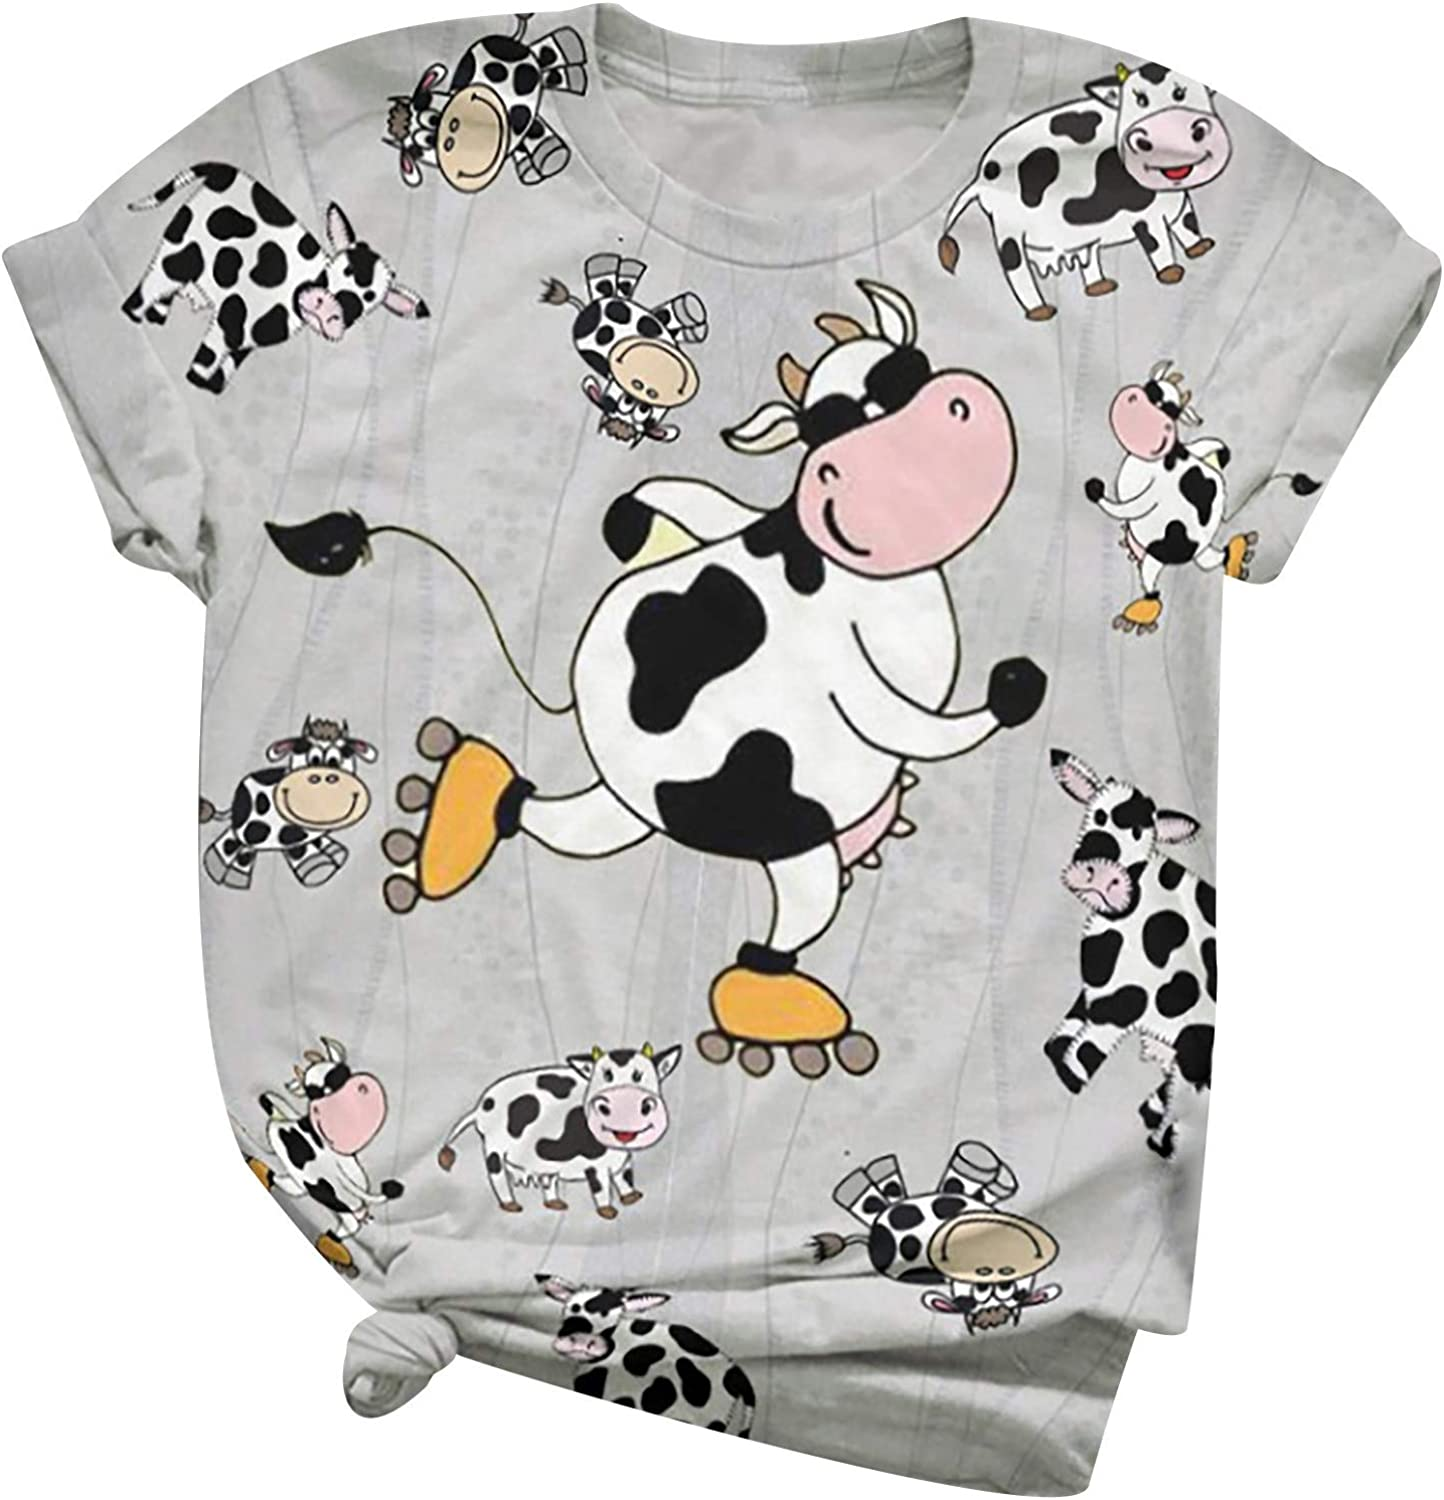 FORUU Plus Size 3D Animal Shirts for Women,2021 Summer Fashion Short Sleeve Bow Print O-Neck Tops Cute Graphic Tee Loose T-Shirt for Girl Basic Tee Sexy Women Shirts Casual Summer Blouses